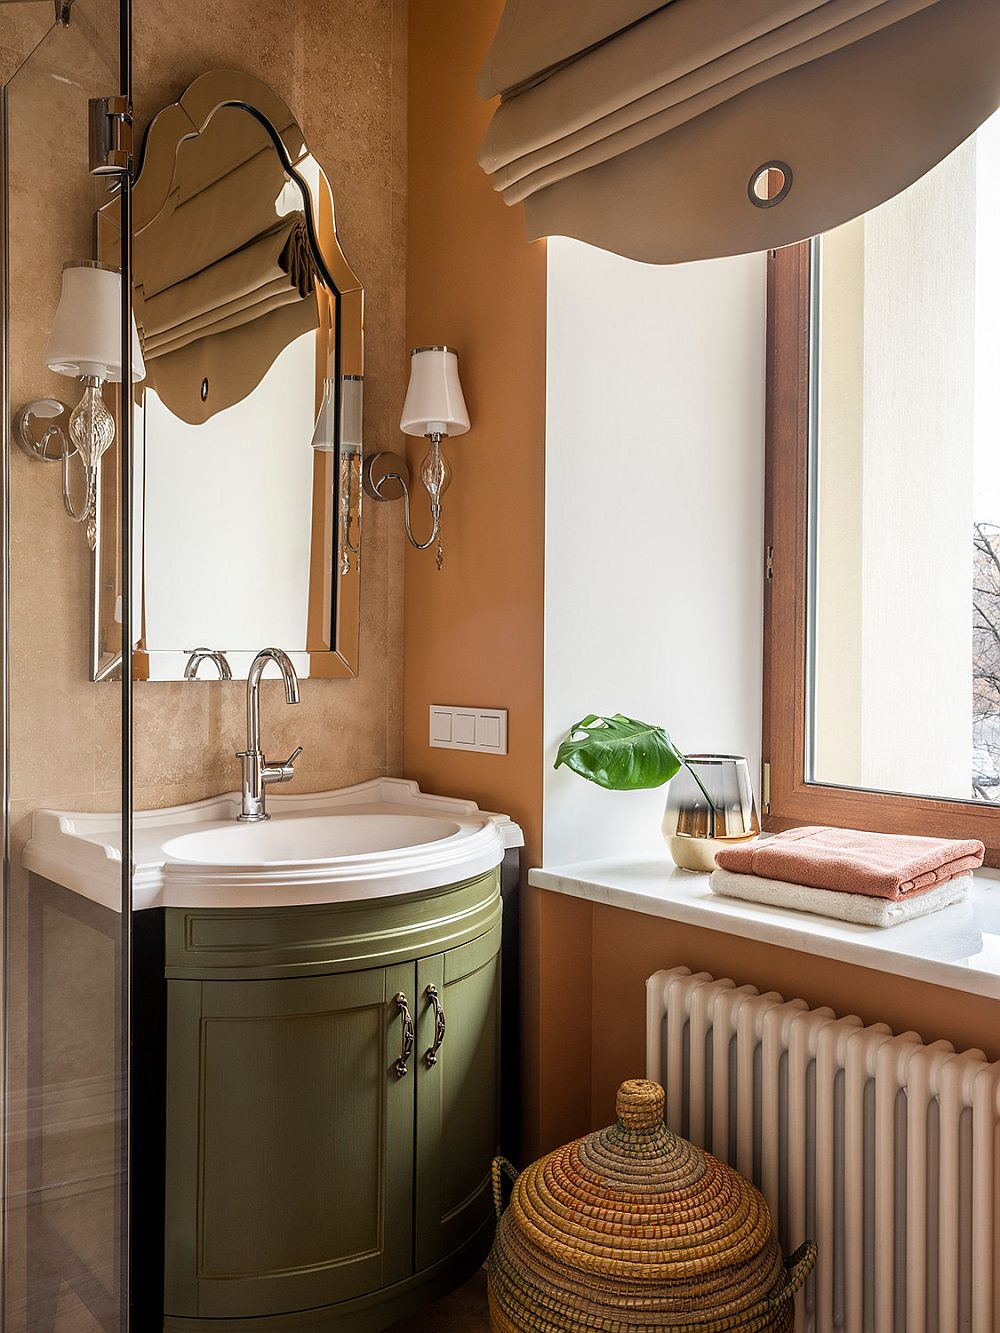 Combining green with textured walls and warm ambiance in the bathroom